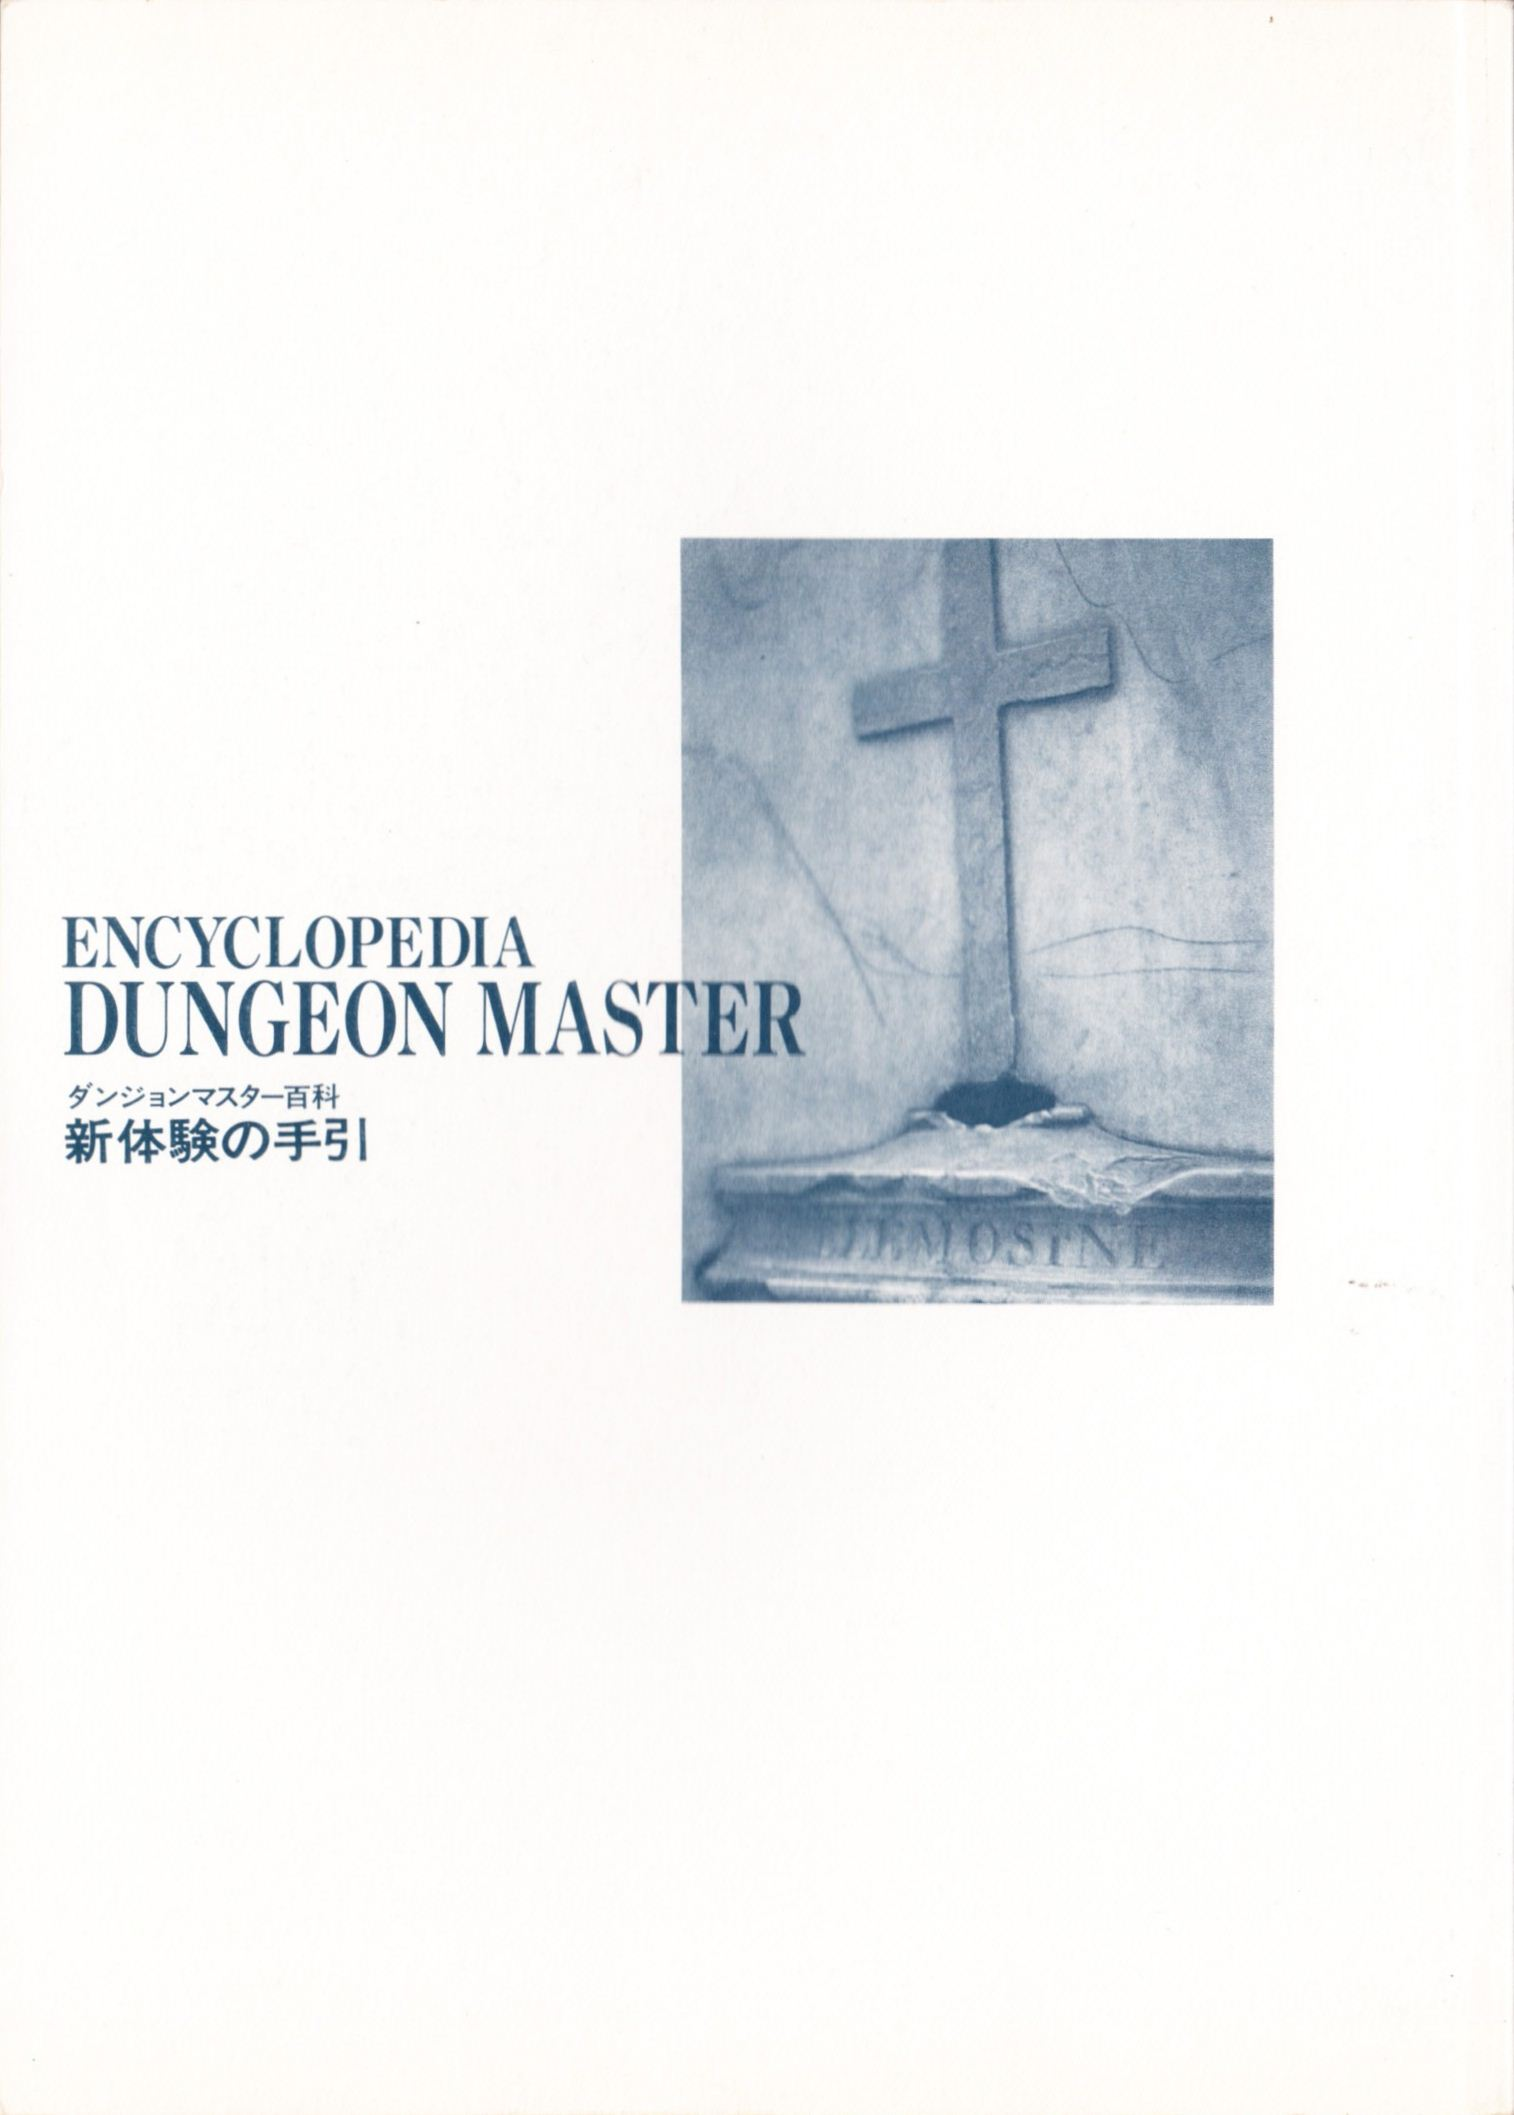 Hint Book - Encyclopedia Dungeon Master New Guidance - JP - Cover - Back - Scan